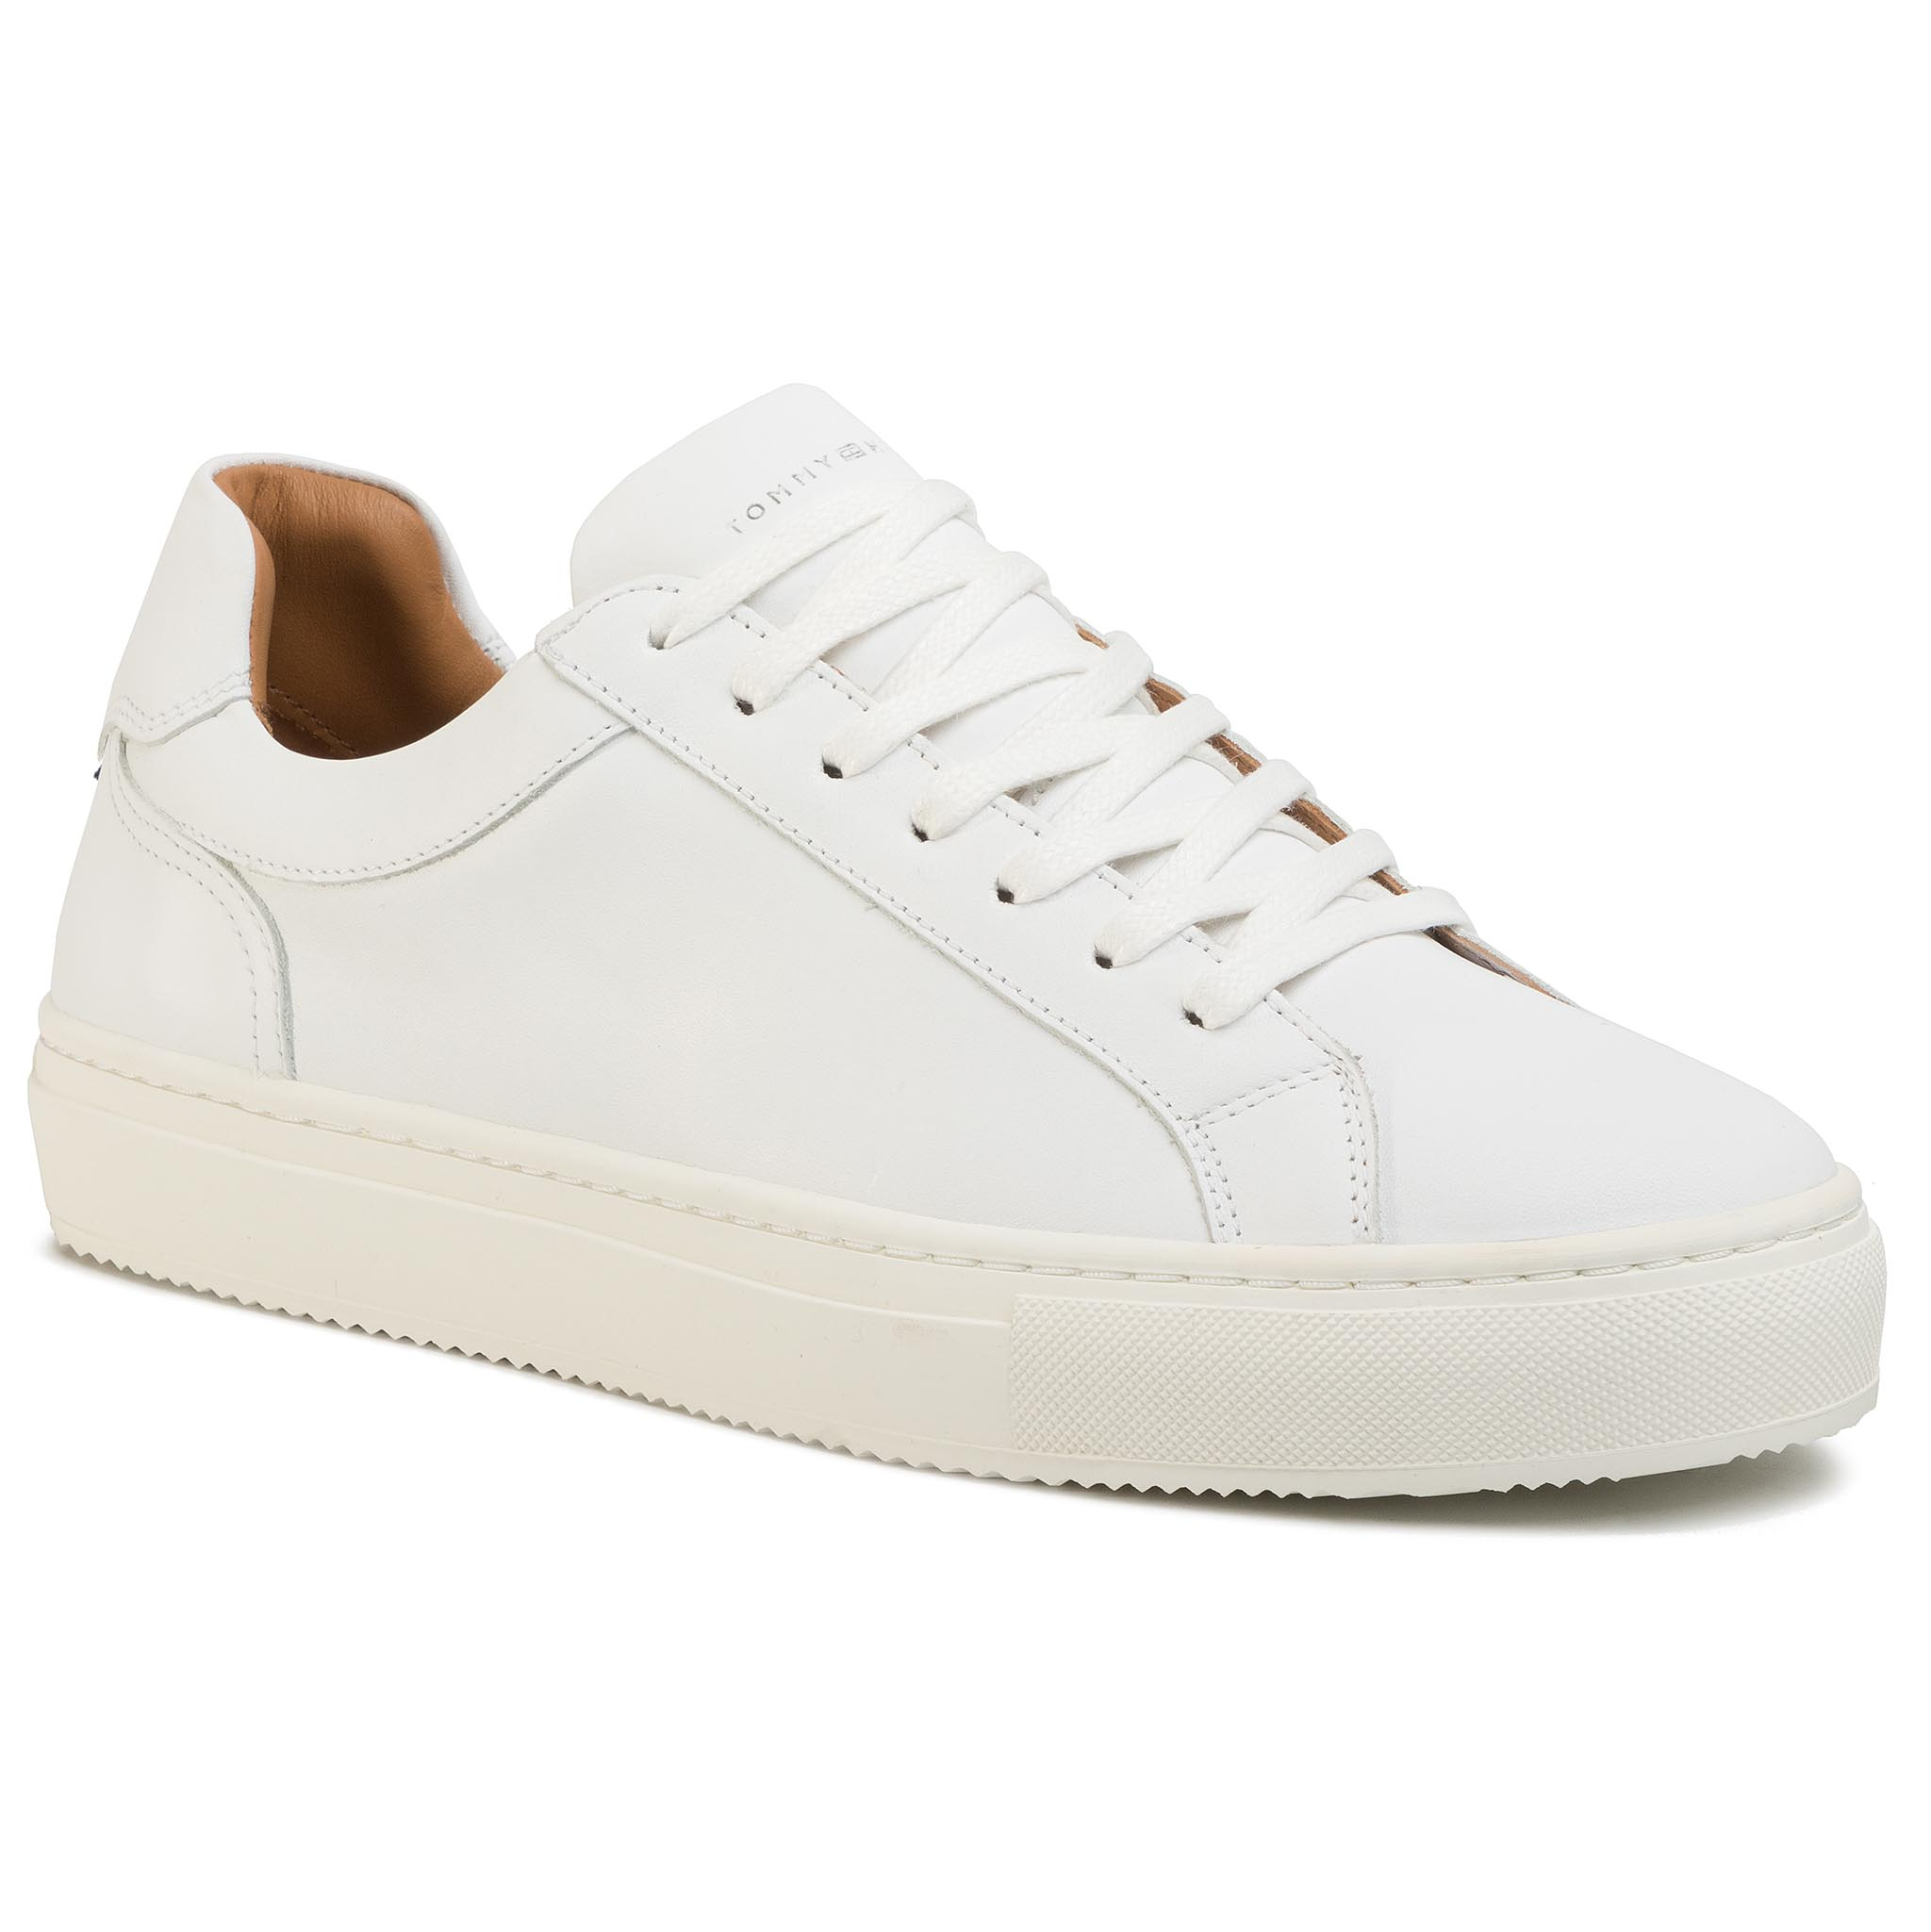 Sneakers TOMMY HILFIGER - Premium Cupsole Leather FM0FM02658 White YBS